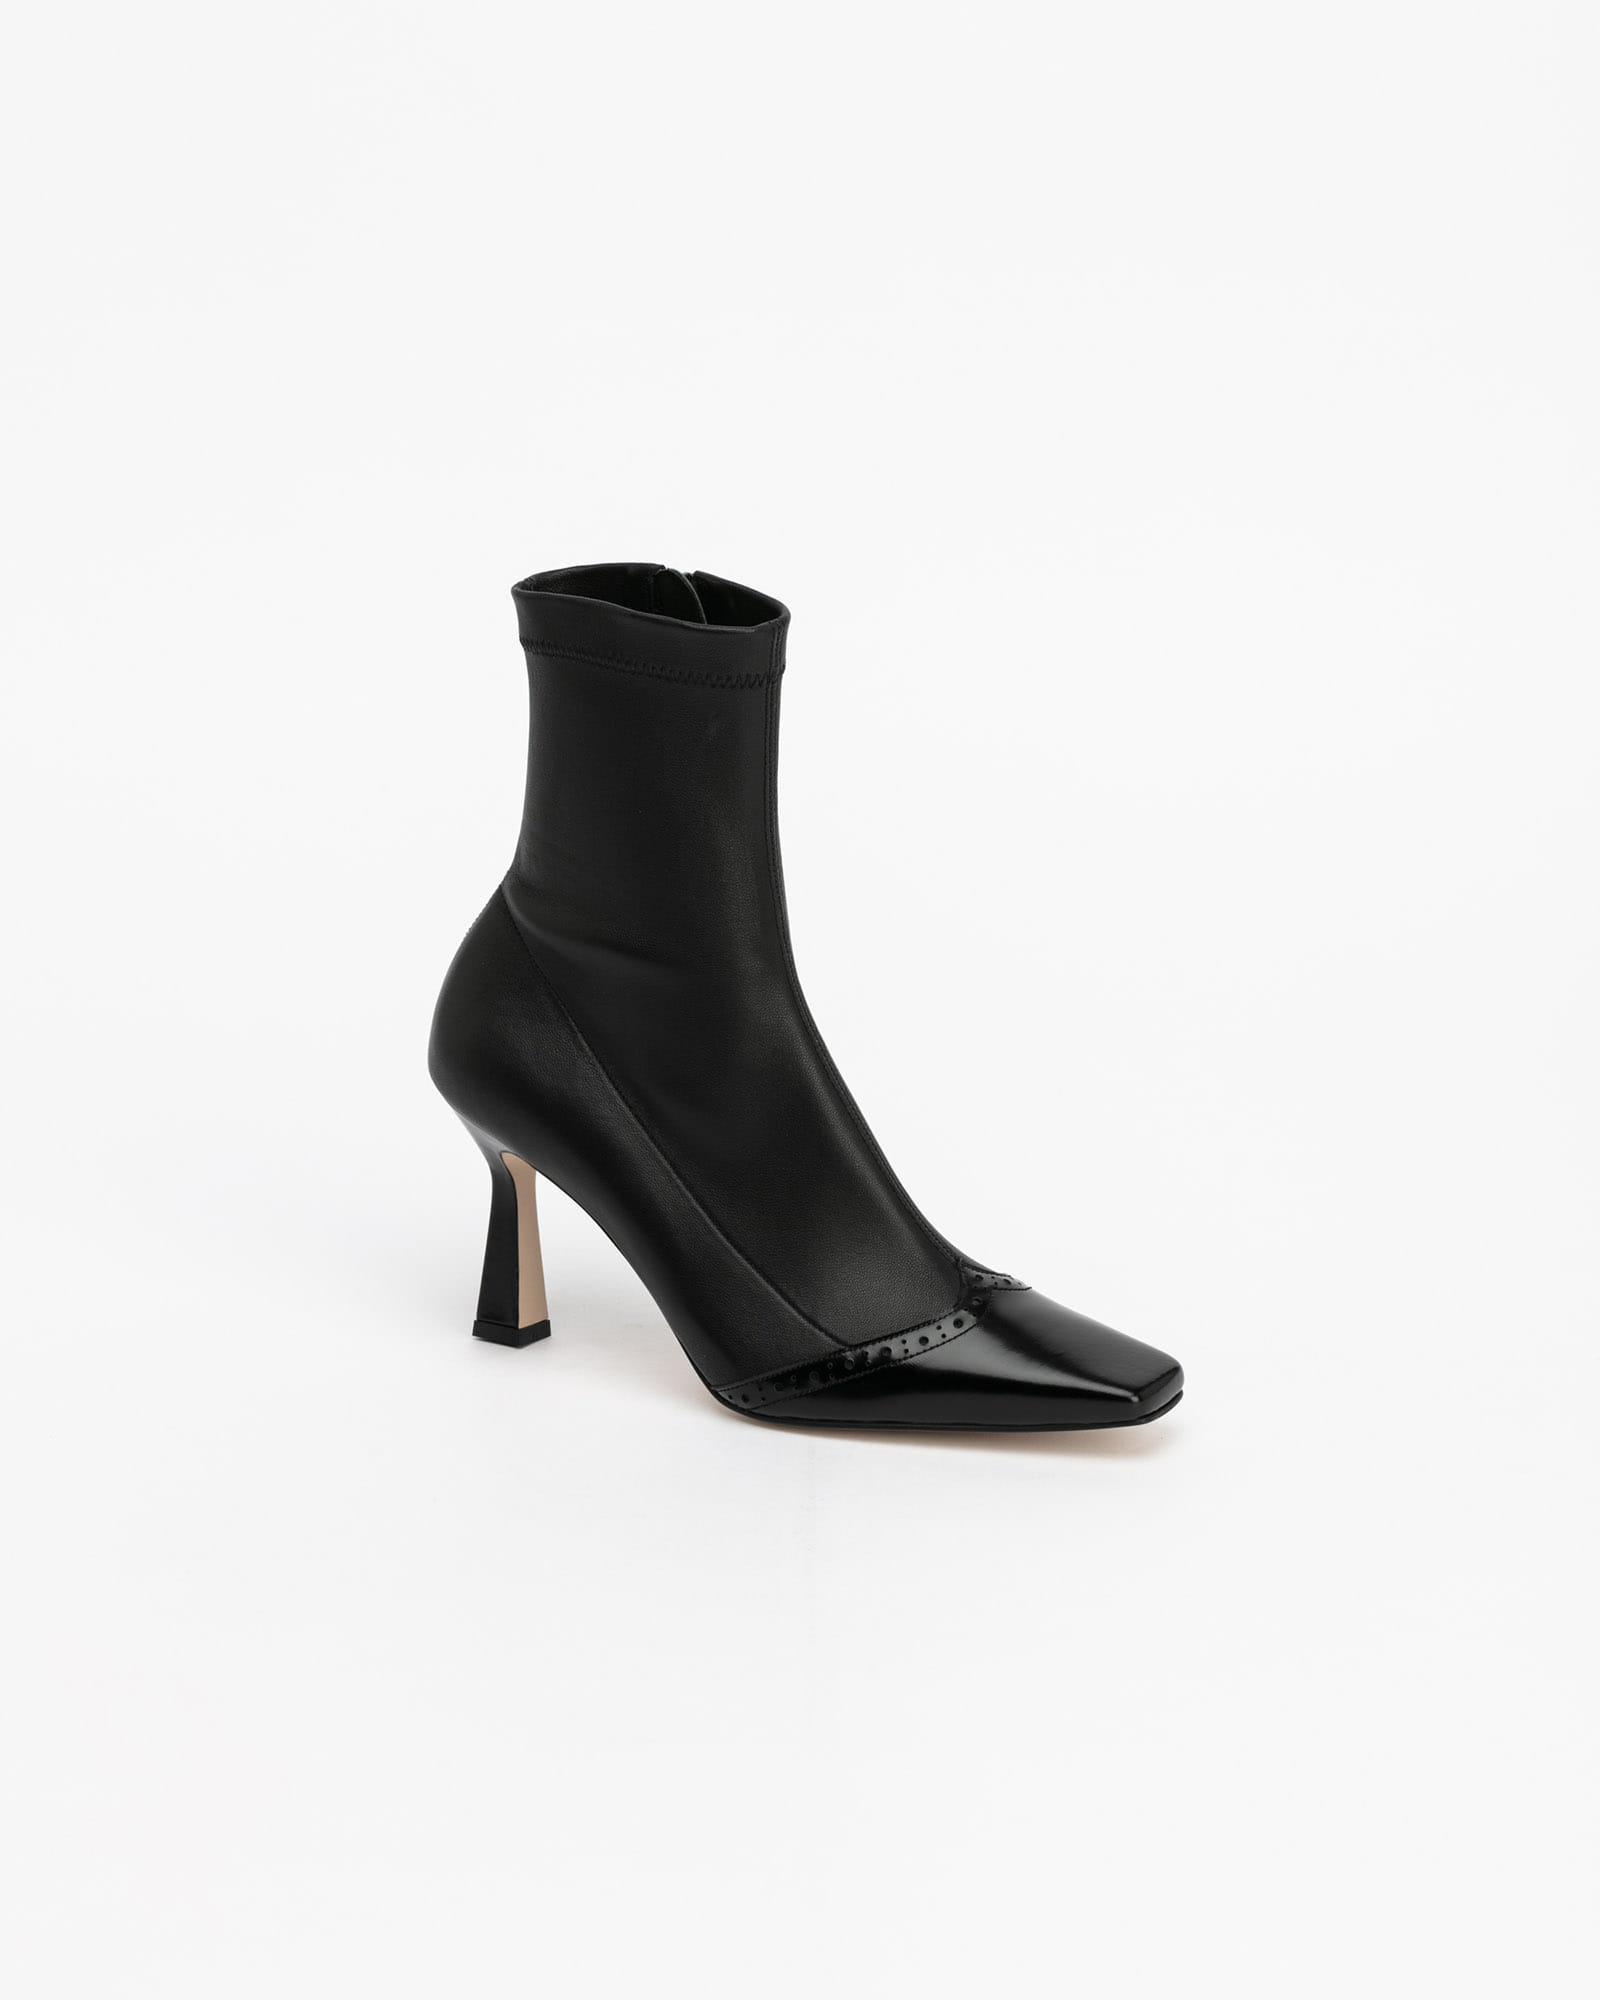 Feroni Spandex Leather Boots in Black